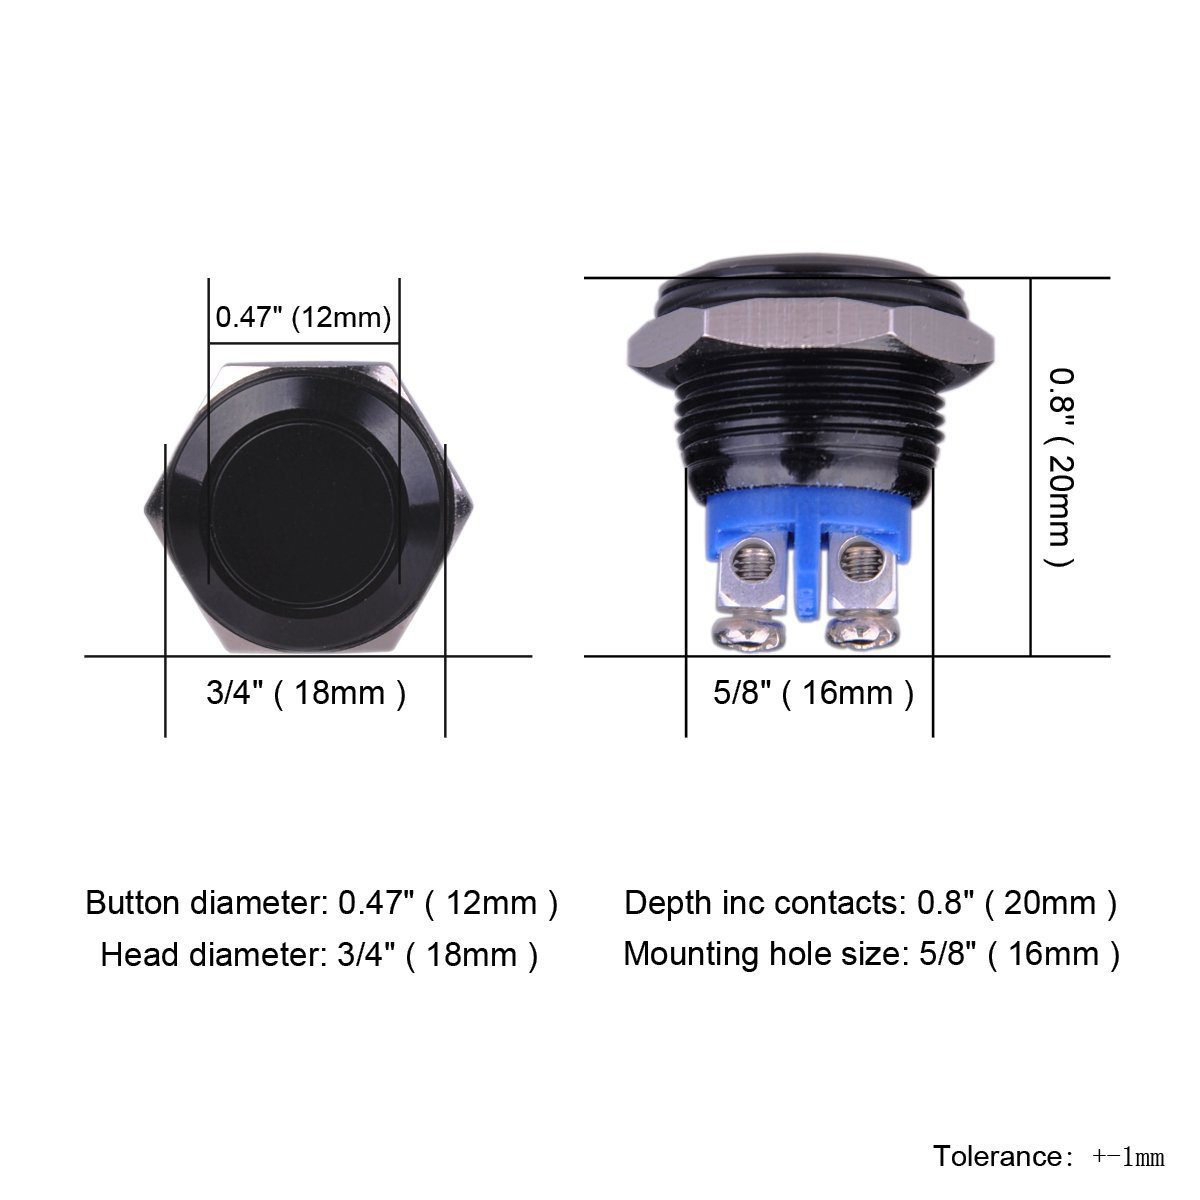 Winomo 16mm Momentary Push Button Switch 3a 250vac Spst 250v Off On 1 Circuit Car Van For Truck Boat Marine Diy Automotive